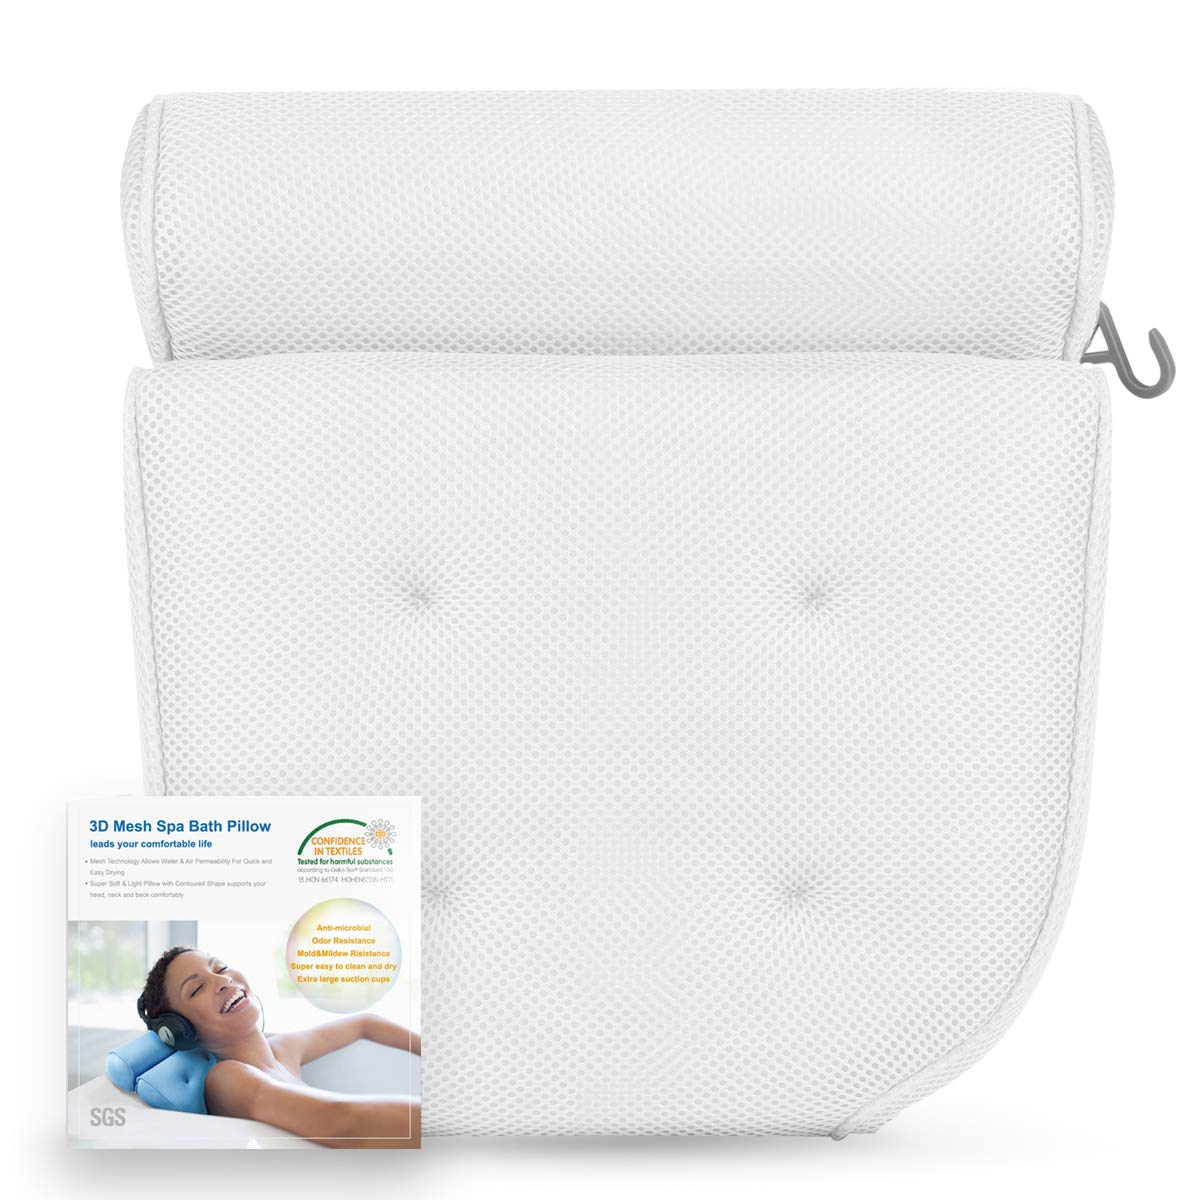 Bath Pillow Spa Pillow Extra Thick, Soft and Large Size for Bathtub, Hot Tub, Jacuzzi, Home Spa Non Slip Support for Head, Neck, Back and Shoulders, 4 Strong Suction Cups CoastaCloud